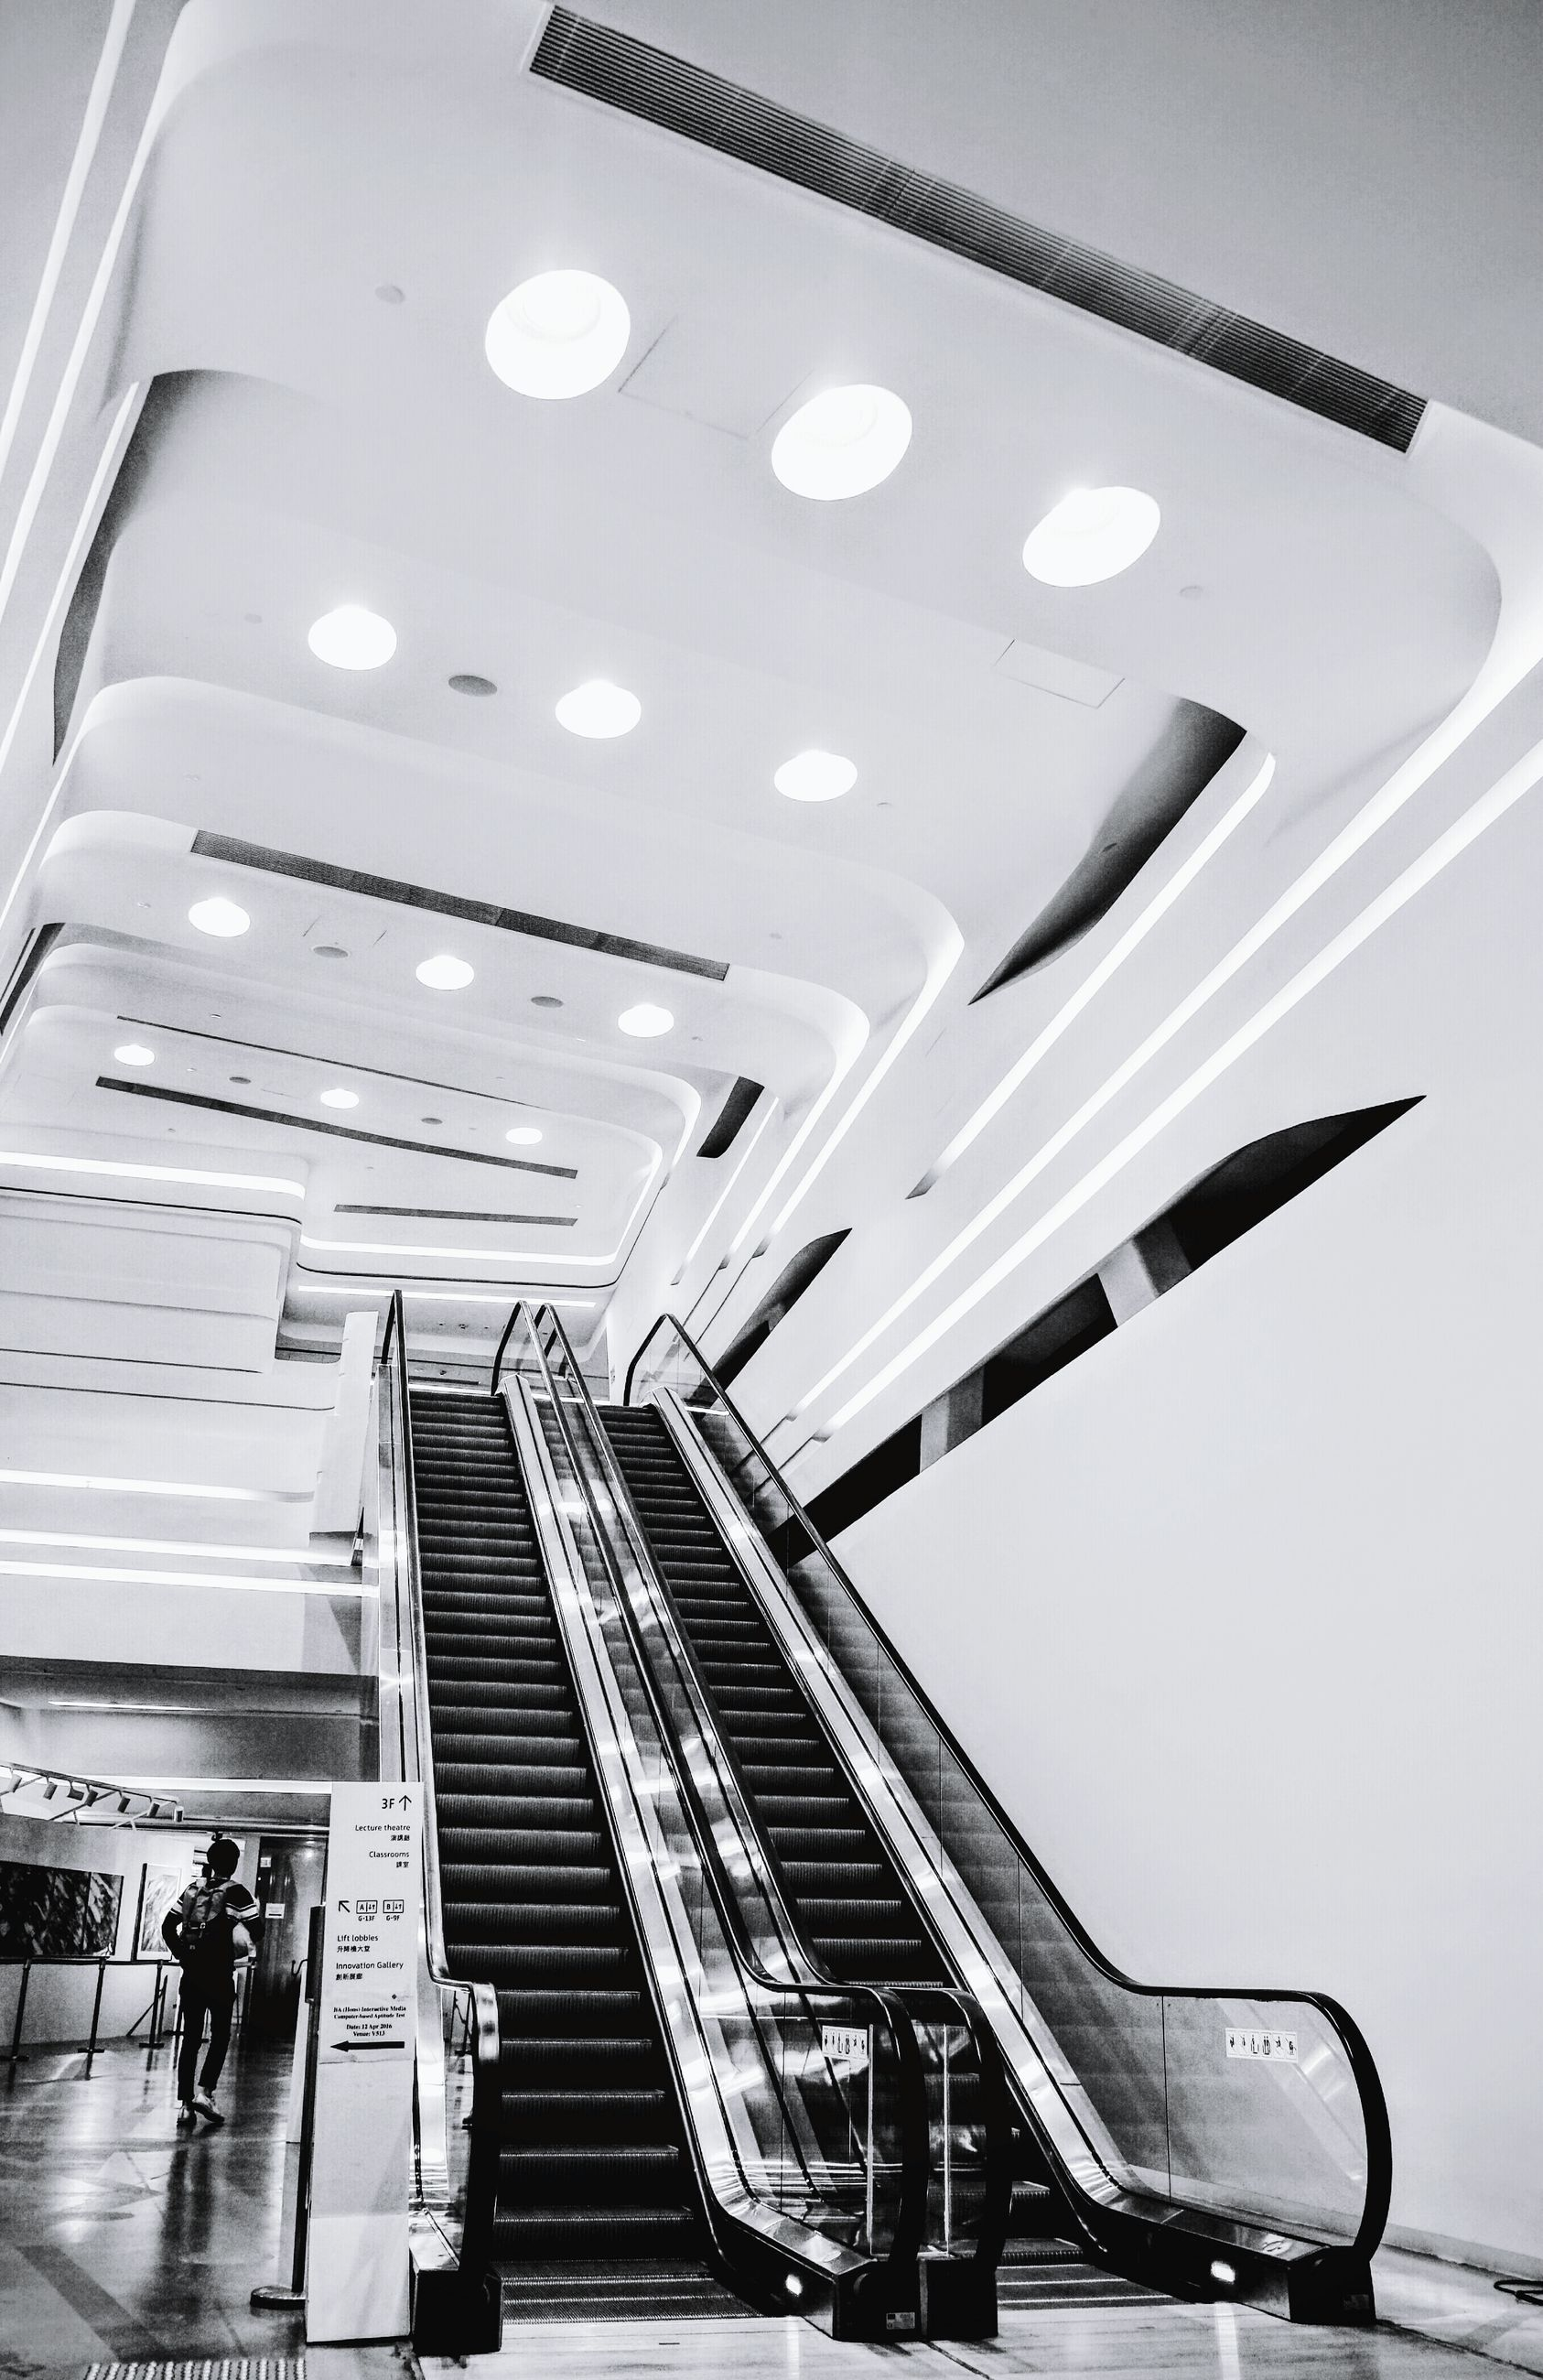 indoors, steps, steps and staircases, staircase, ceiling, technology, high angle view, escalator, low angle view, modern, transportation, railing, convenience, built structure, architecture, in a row, no people, arts culture and entertainment, metal, incidental people